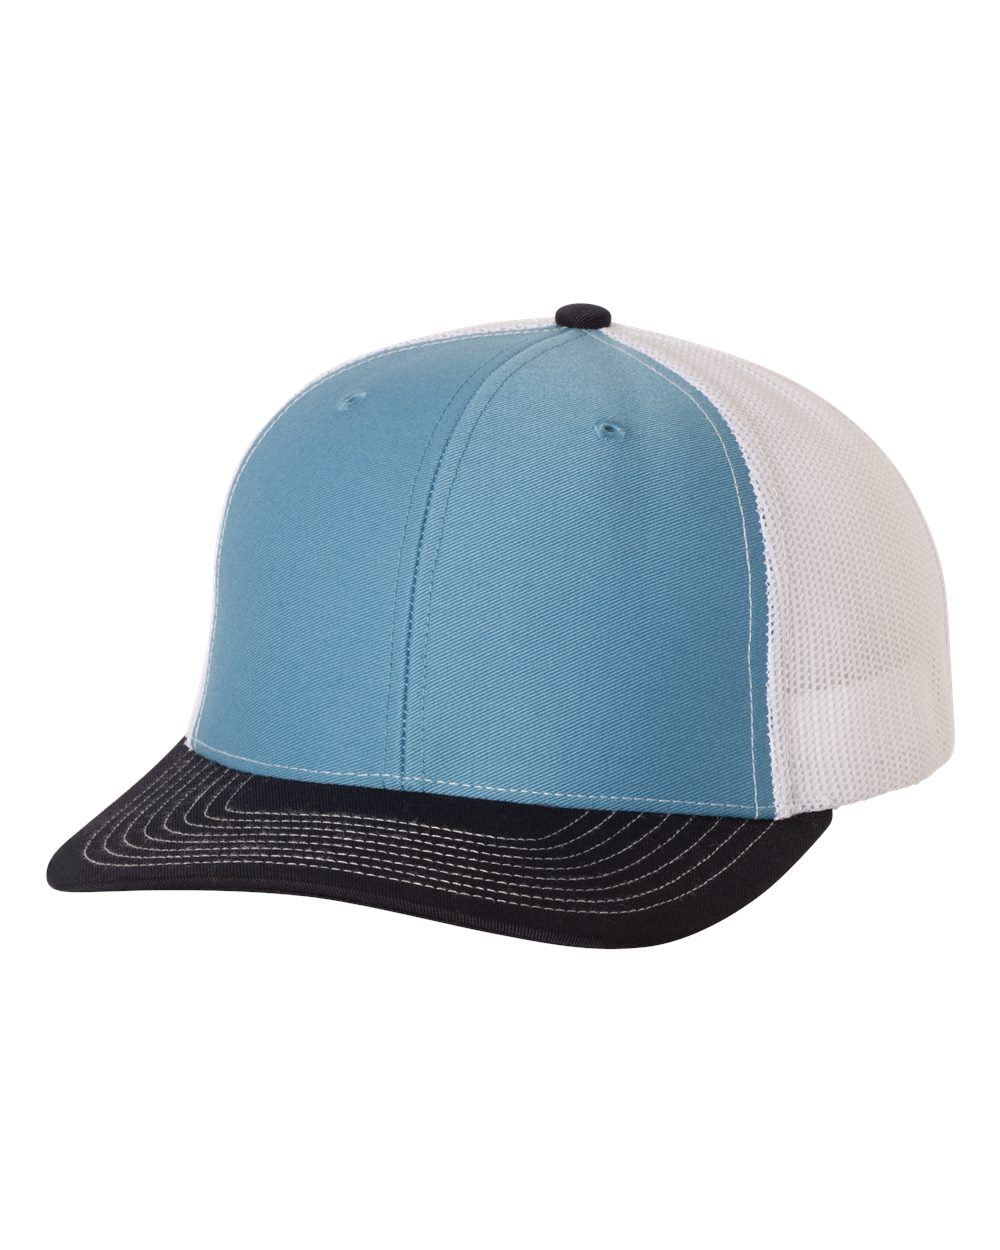 Columbia Blue / White / Navy